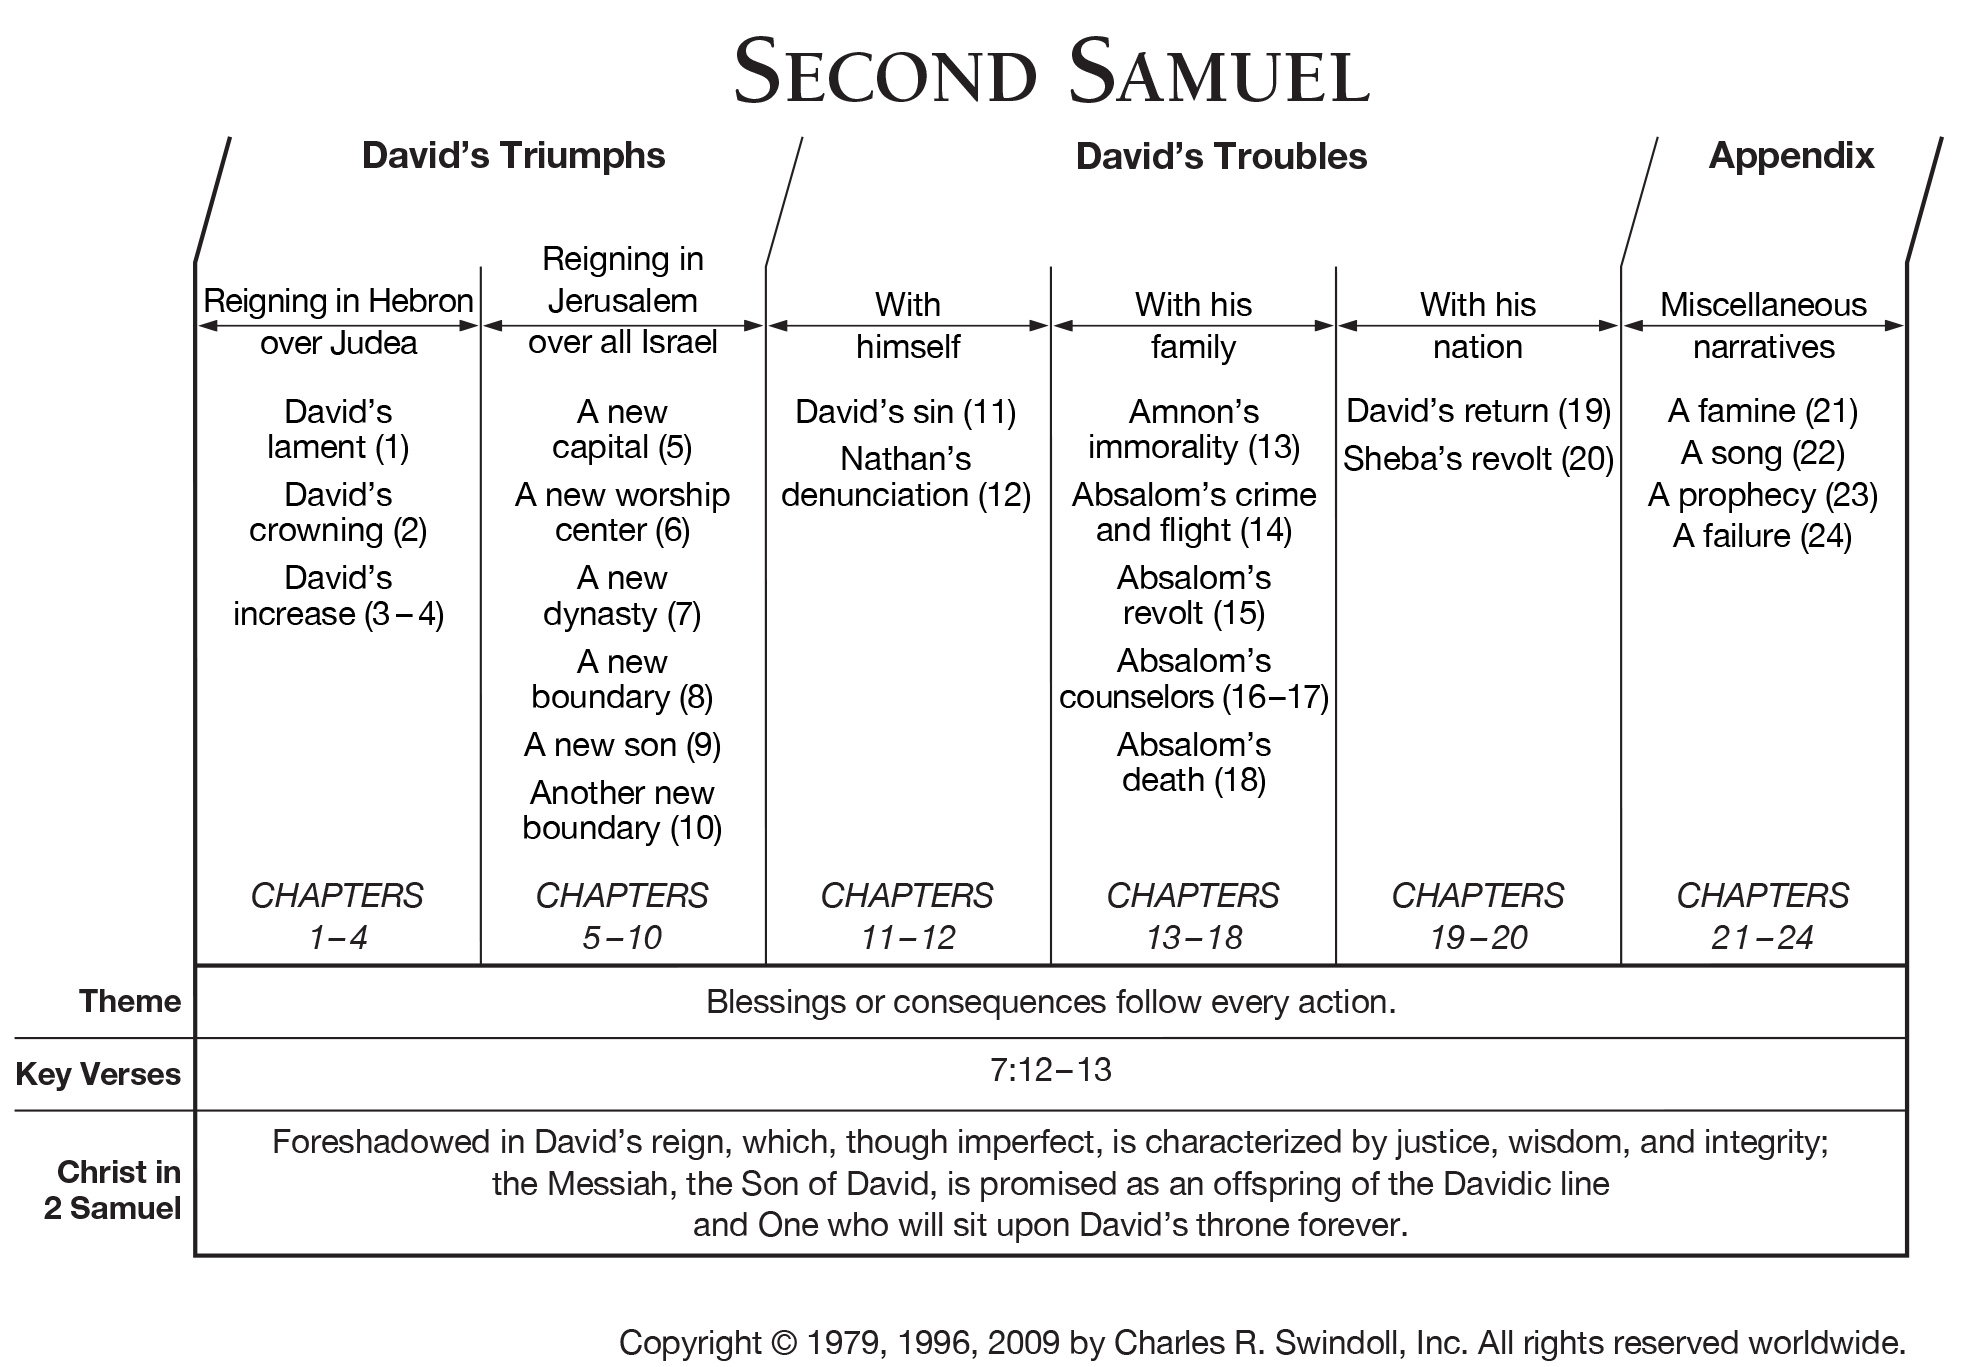 Book Of Second Samuel Overview Insight For Living Ministries